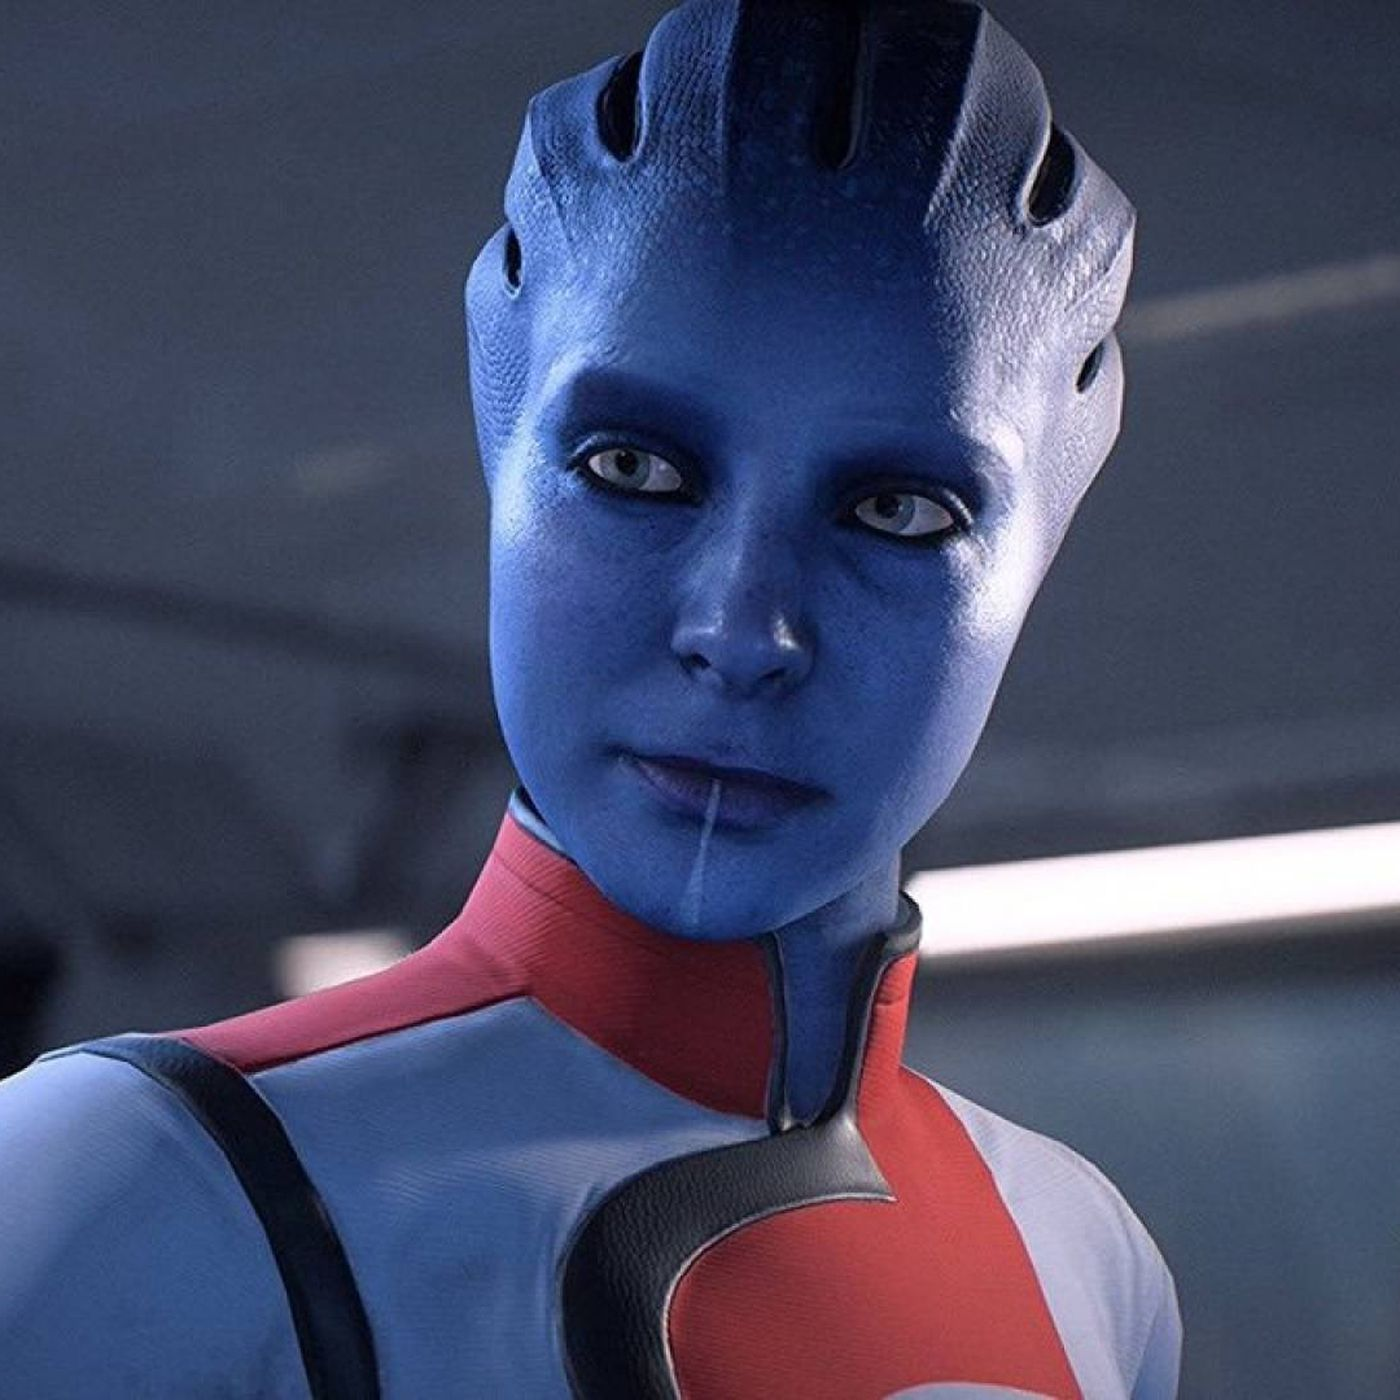 Mass Effect: Andromeda reveals that the all-female asari